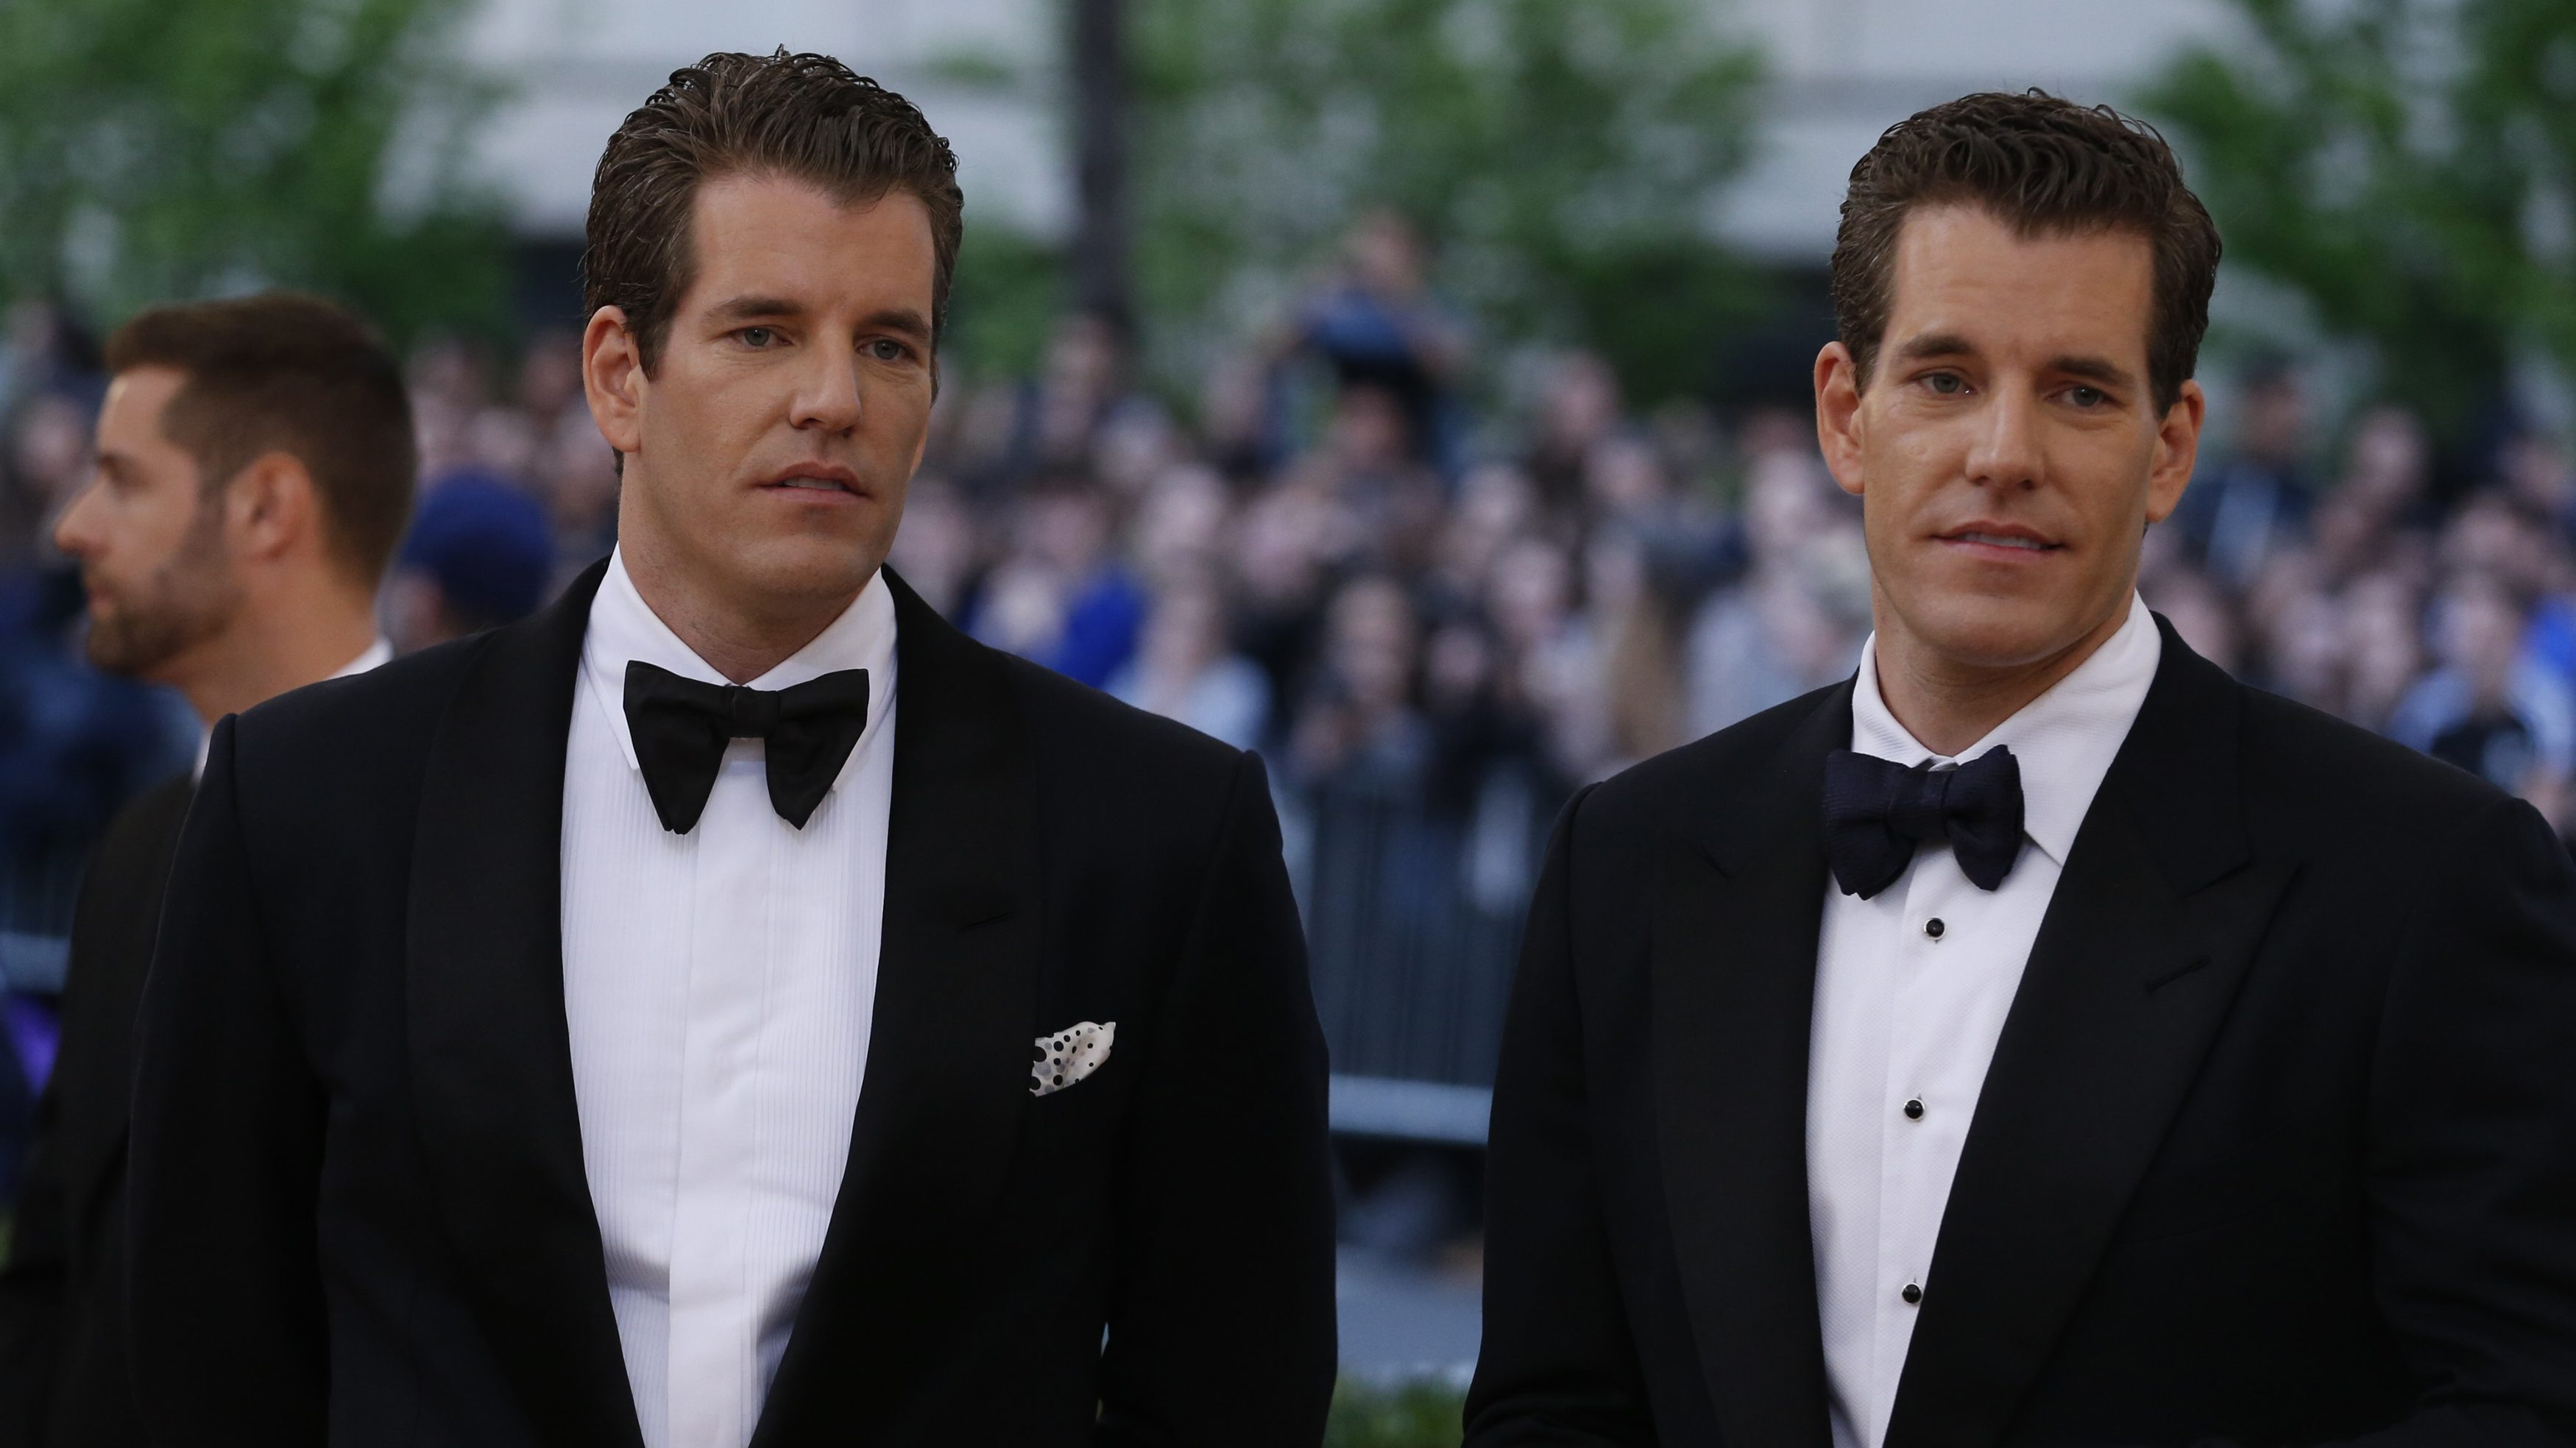 """Entrepeneurs Tyler and Cameron Winklevoss arrive at the Metropolitan Museum of Art Costume Institute Gala (Met Gala) to celebrate the opening of """"Manus x Machina: Fashion in an Age of Technology"""" in the Manhattan borough of New York, May 2, 2016."""